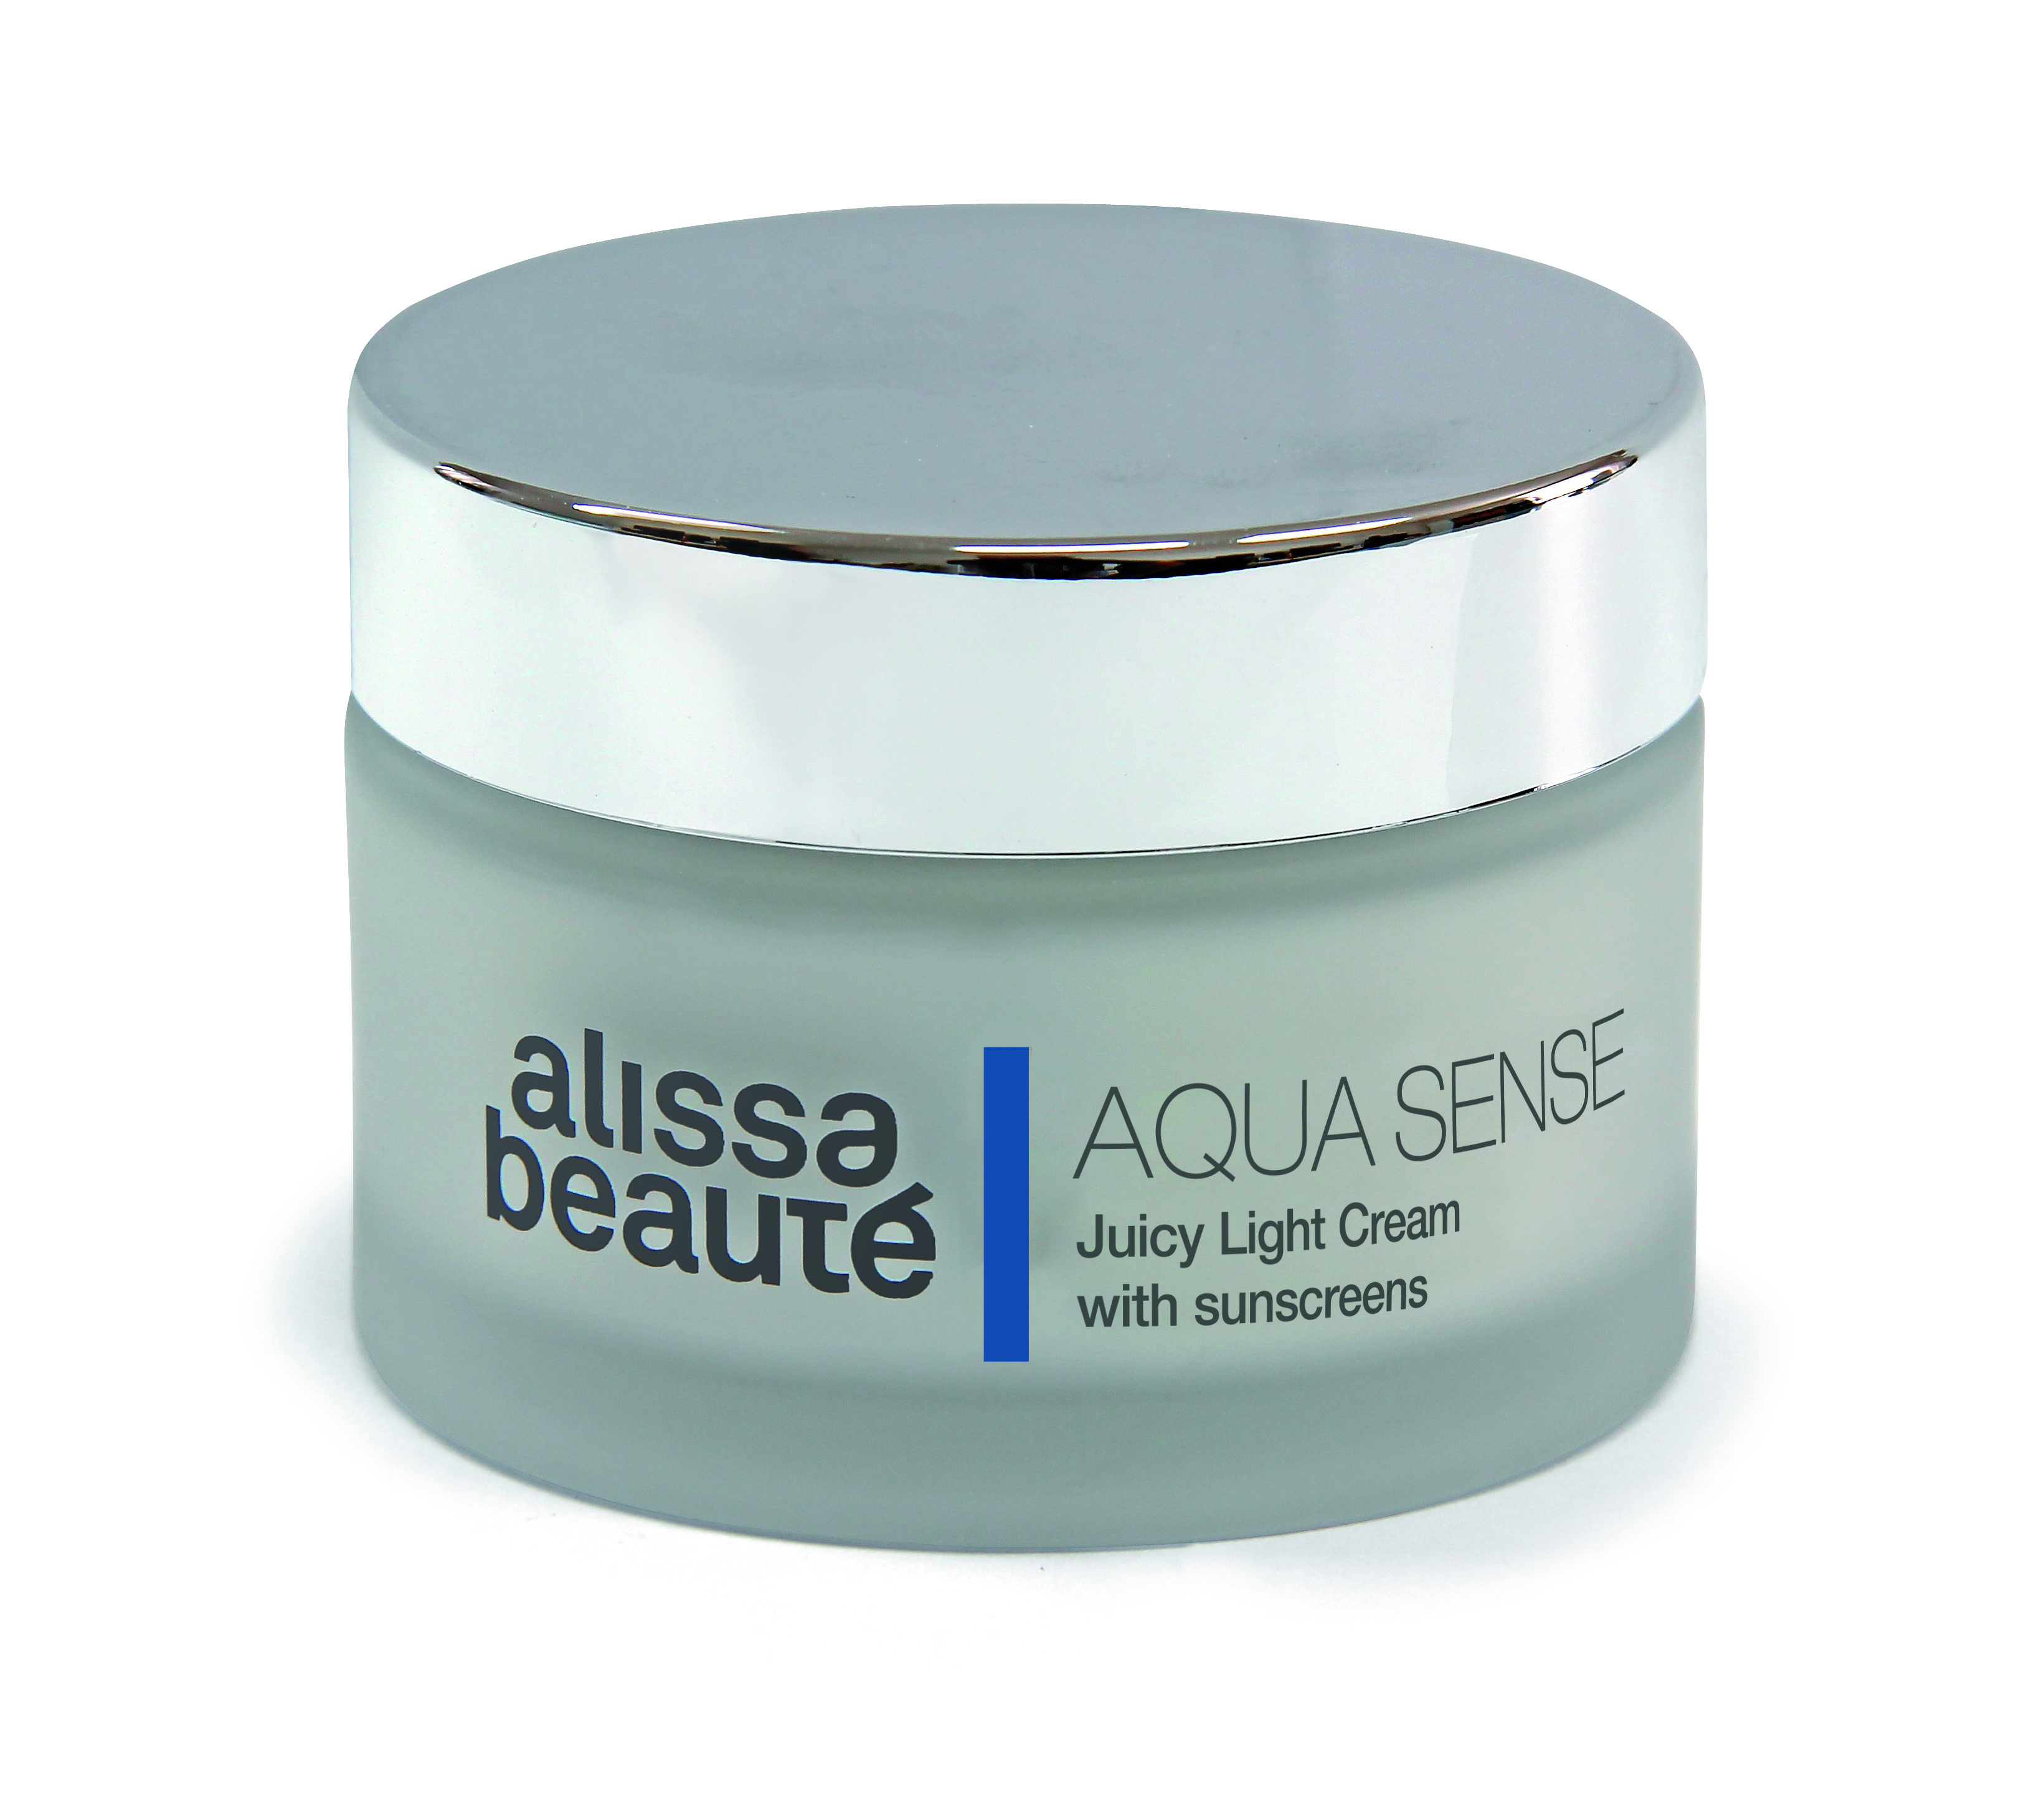 281 Aqua Sense Juicy Light Cream 50 ml sklo